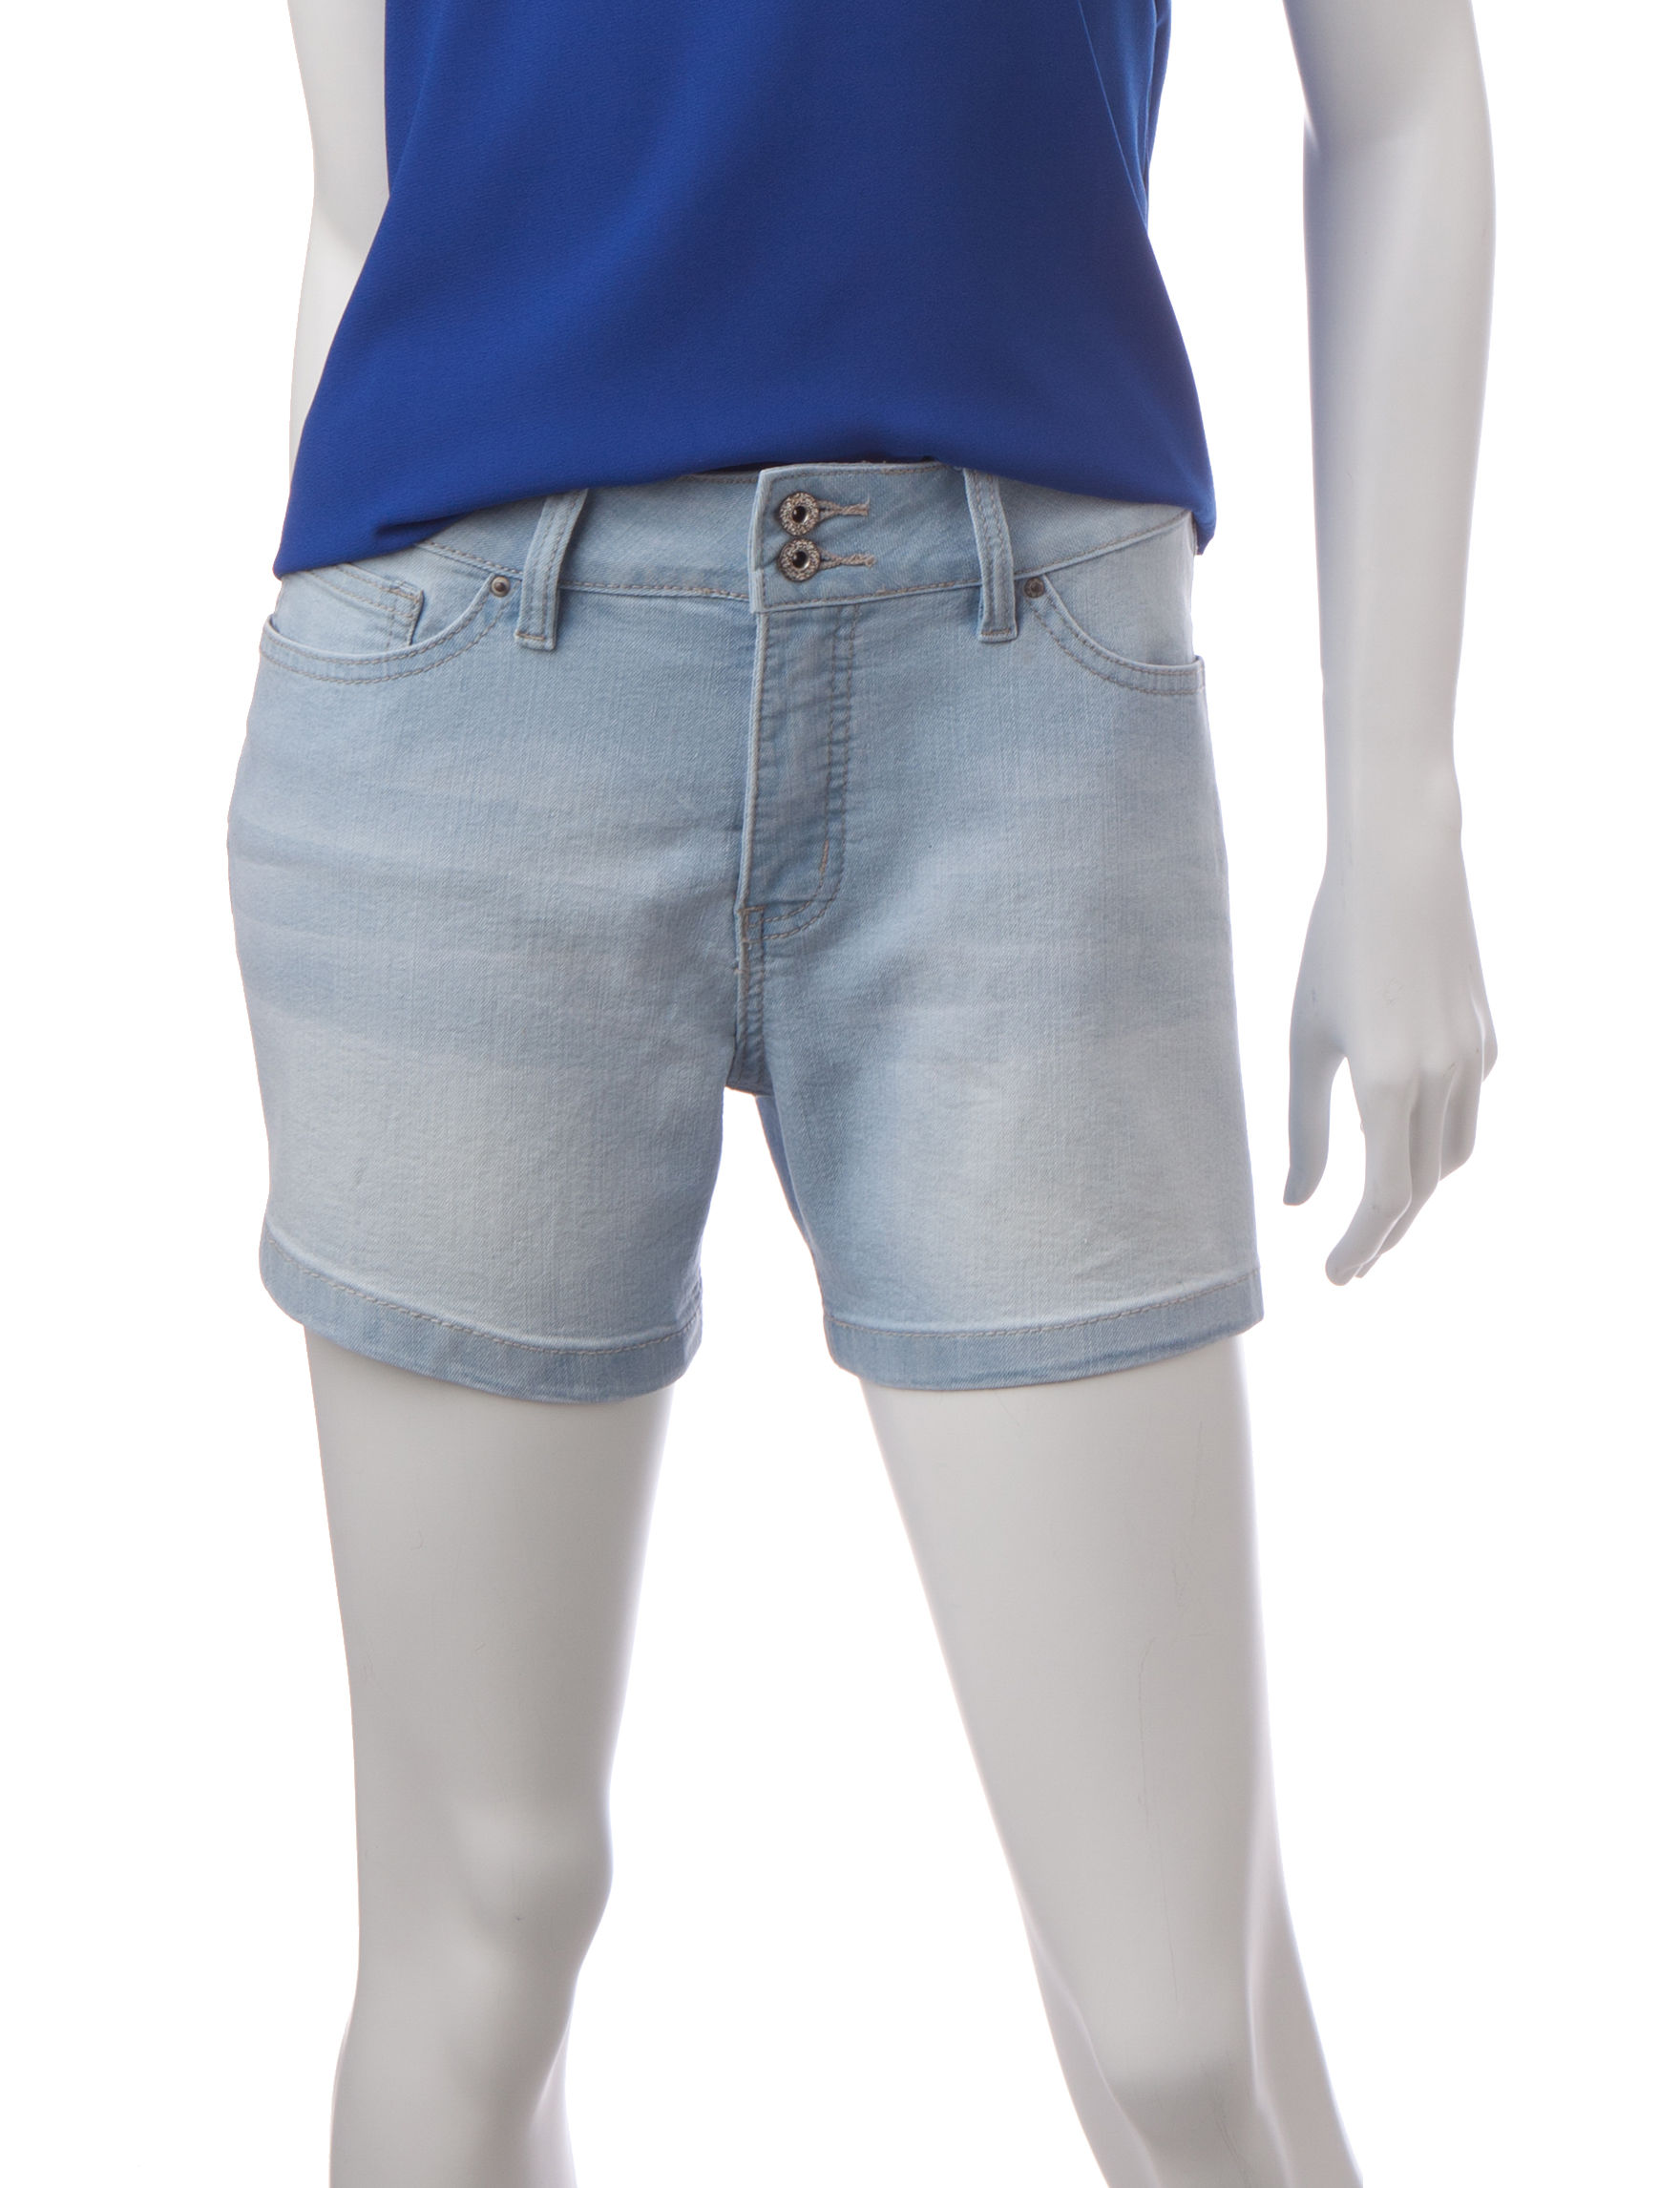 Signature Studio Blue Denim Shorts High Waist